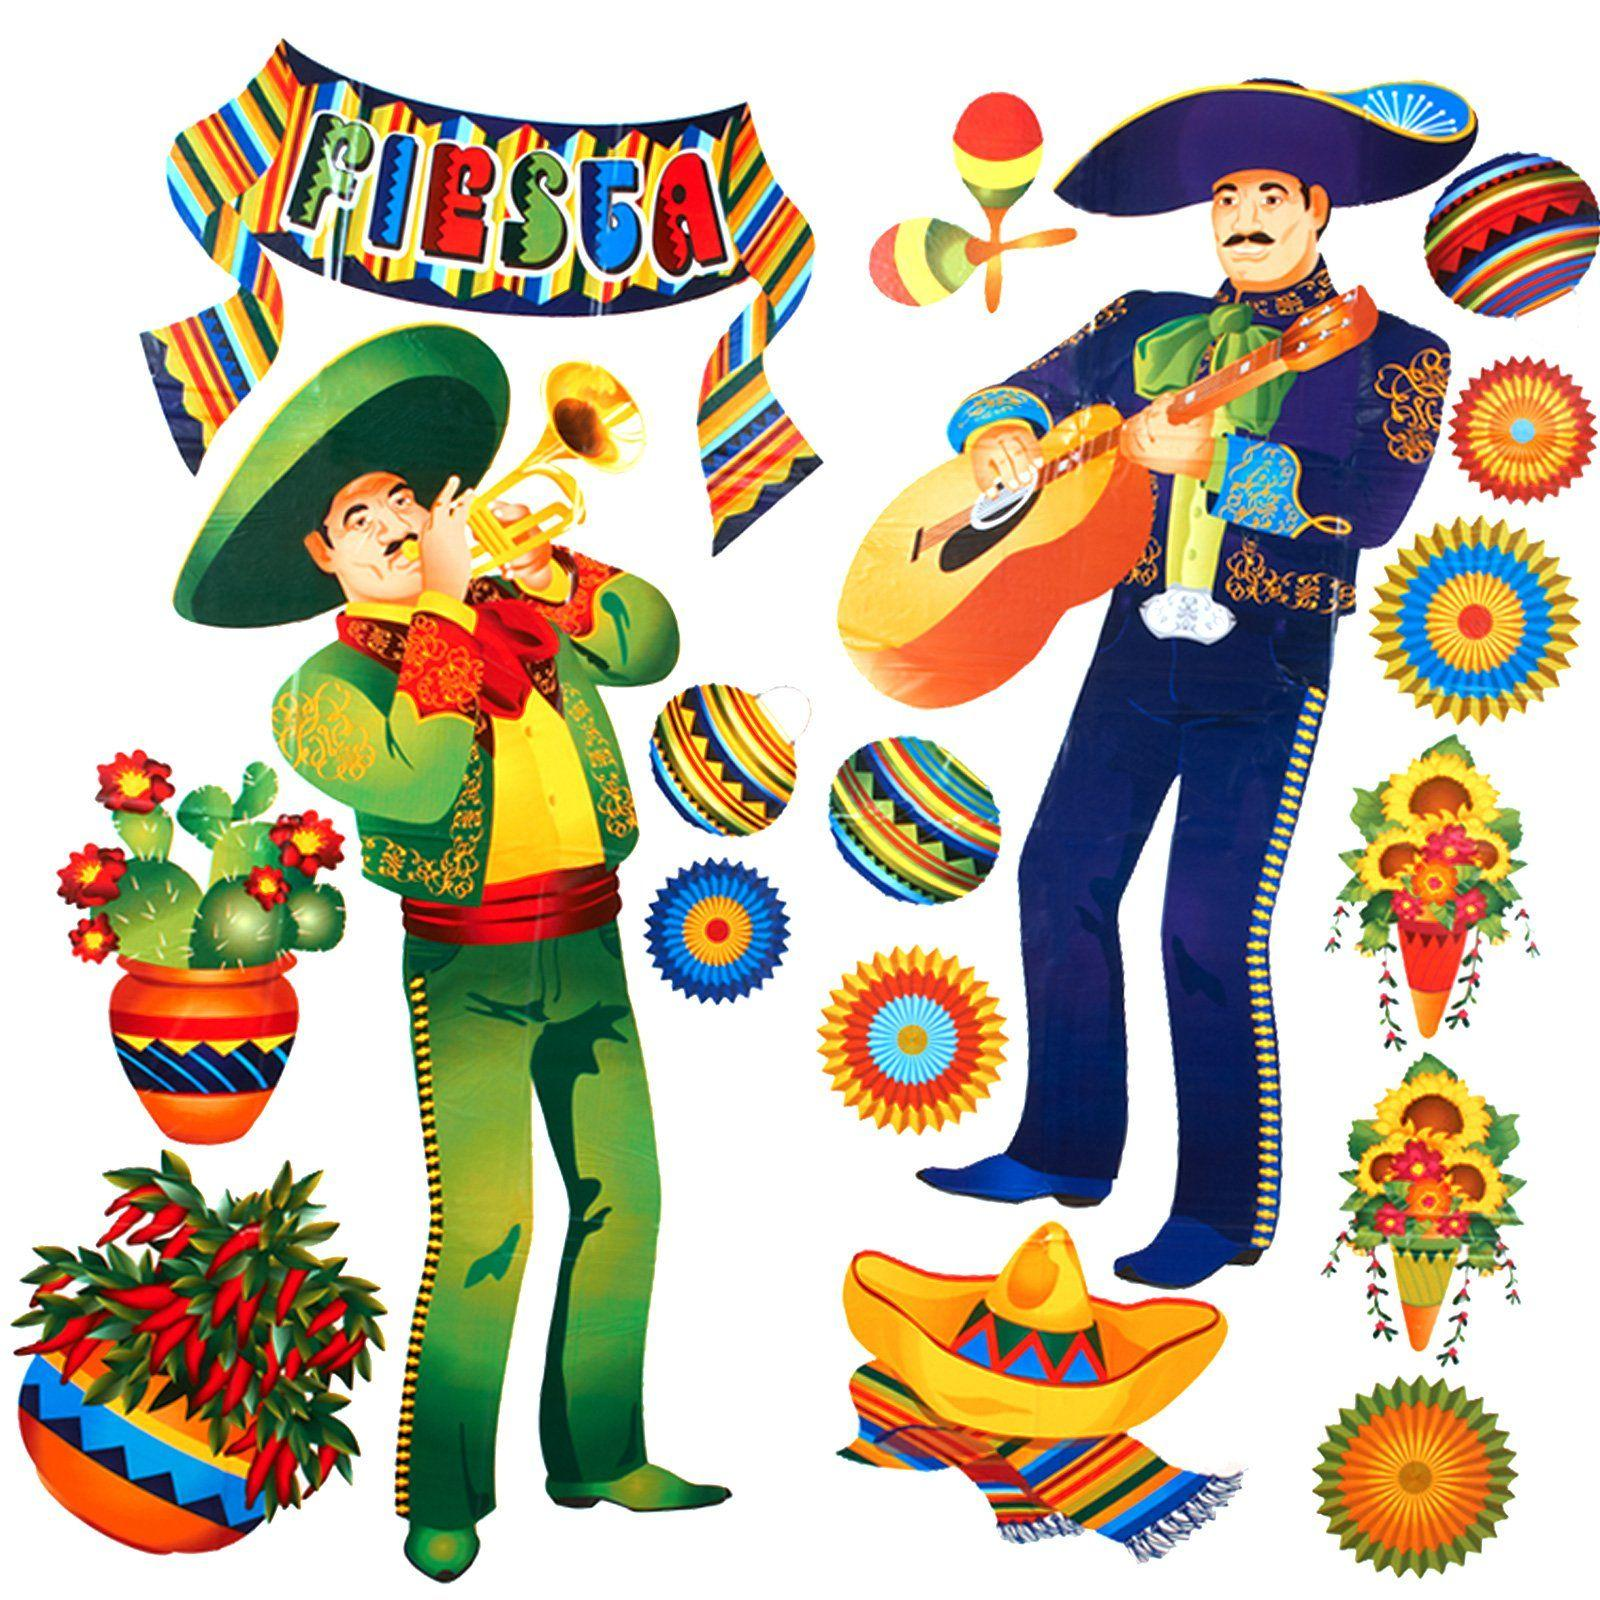 1024 X Auto Source Mexican Fiesta Wallpapers Wallpaper Cave